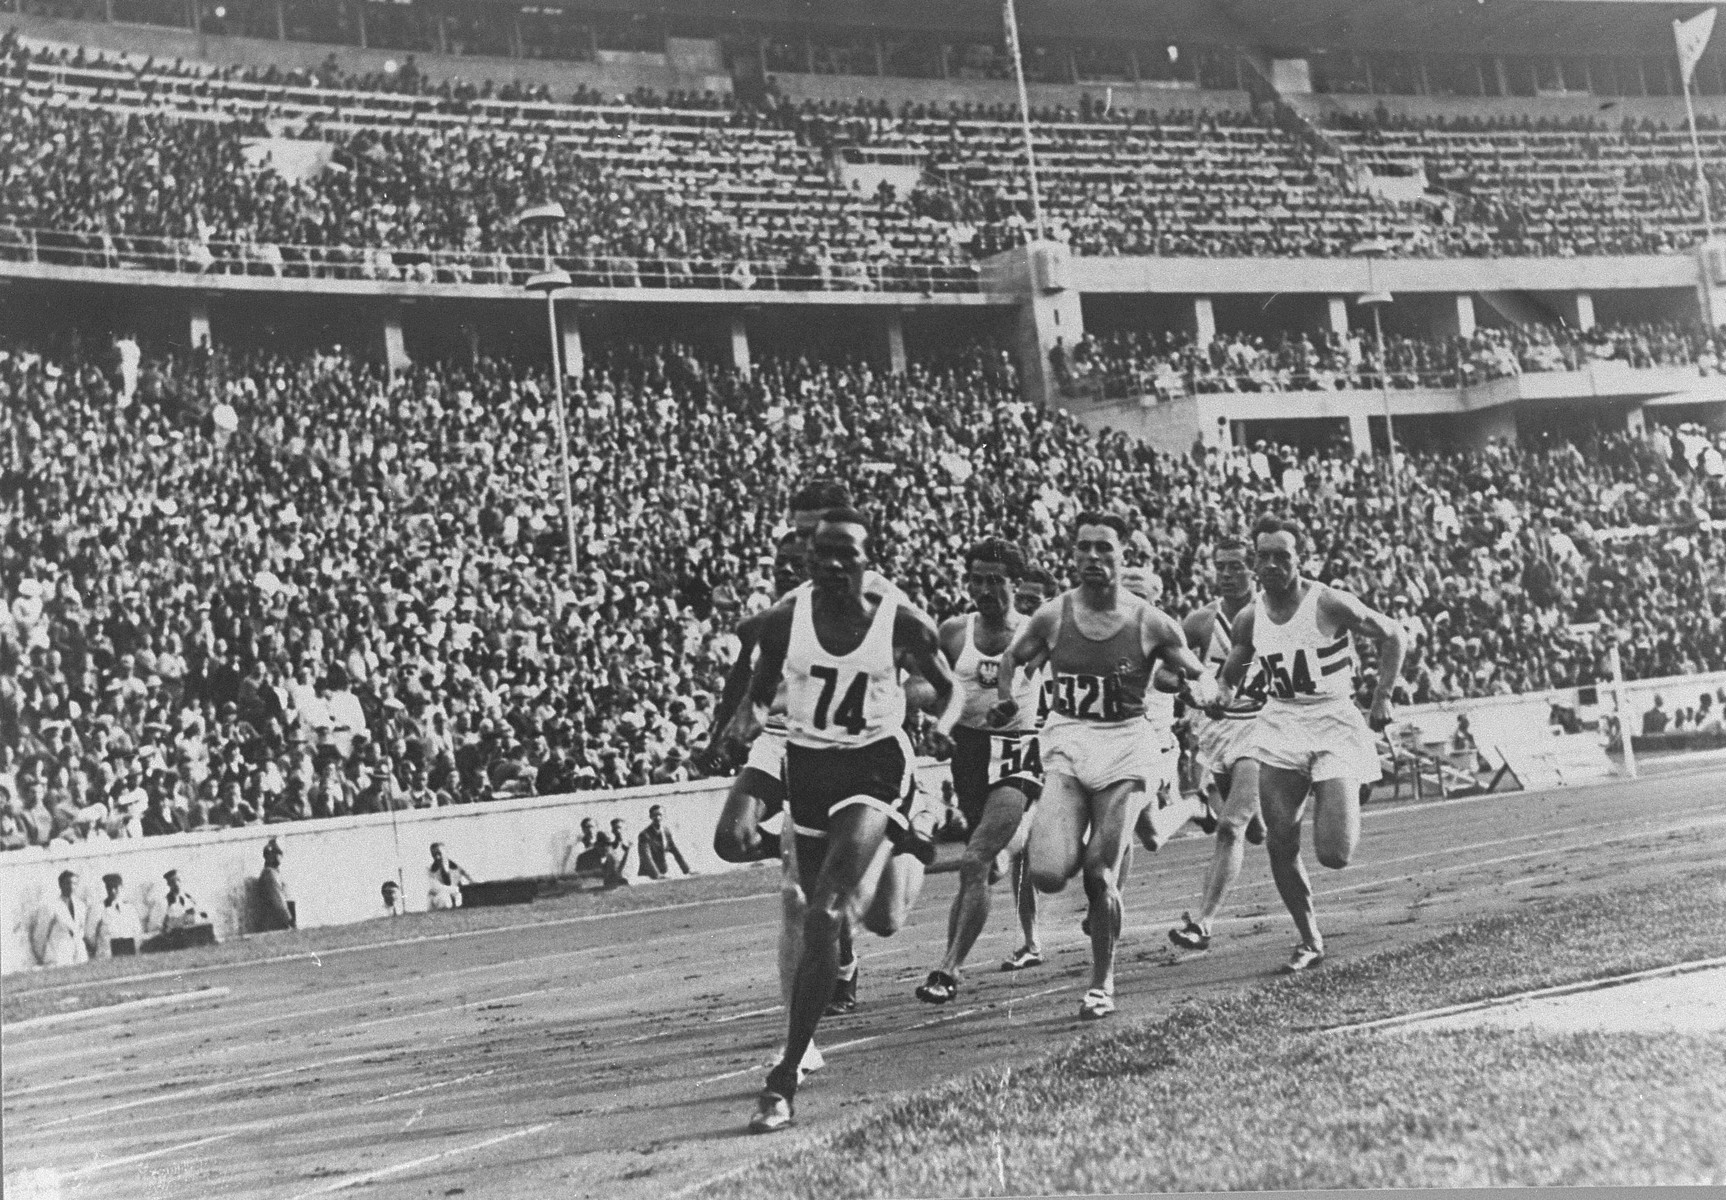 Runners competing in the 800m event at the Olympic games in Berlin.  Barely visible on the outside is American John Woodruff, who came from behind to win the race in 1 minute 52.9 seconds.